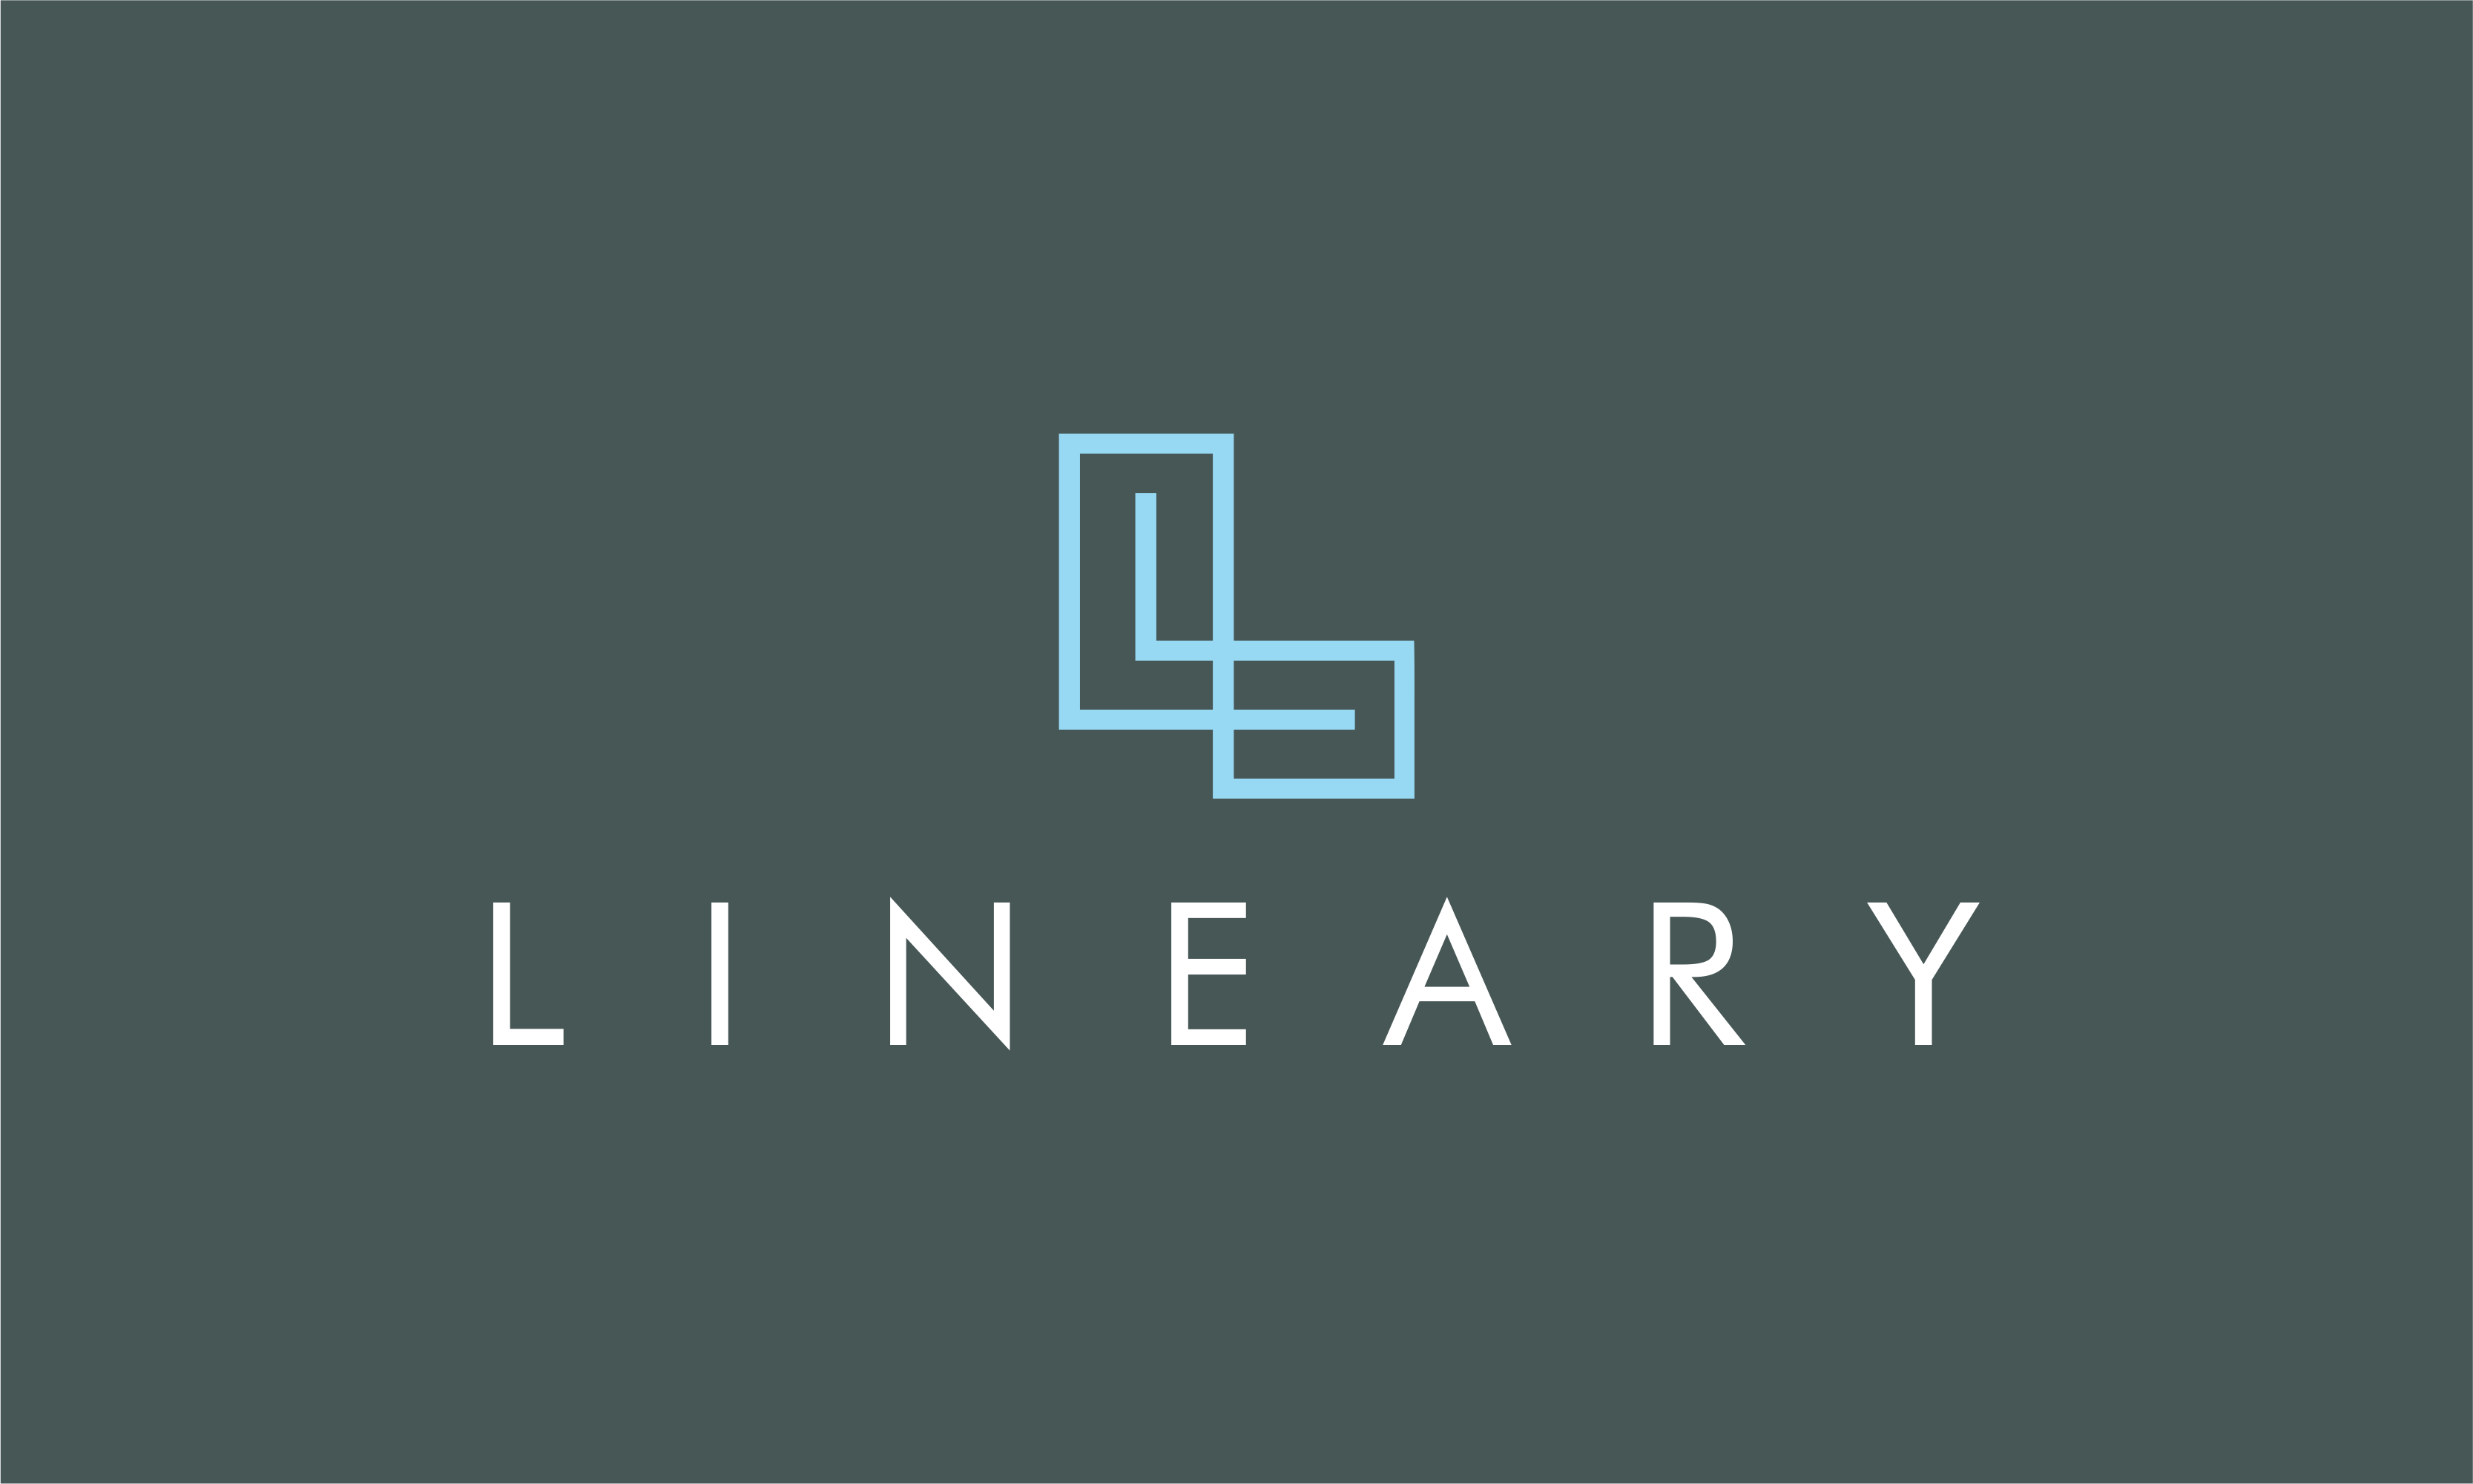 Lineary